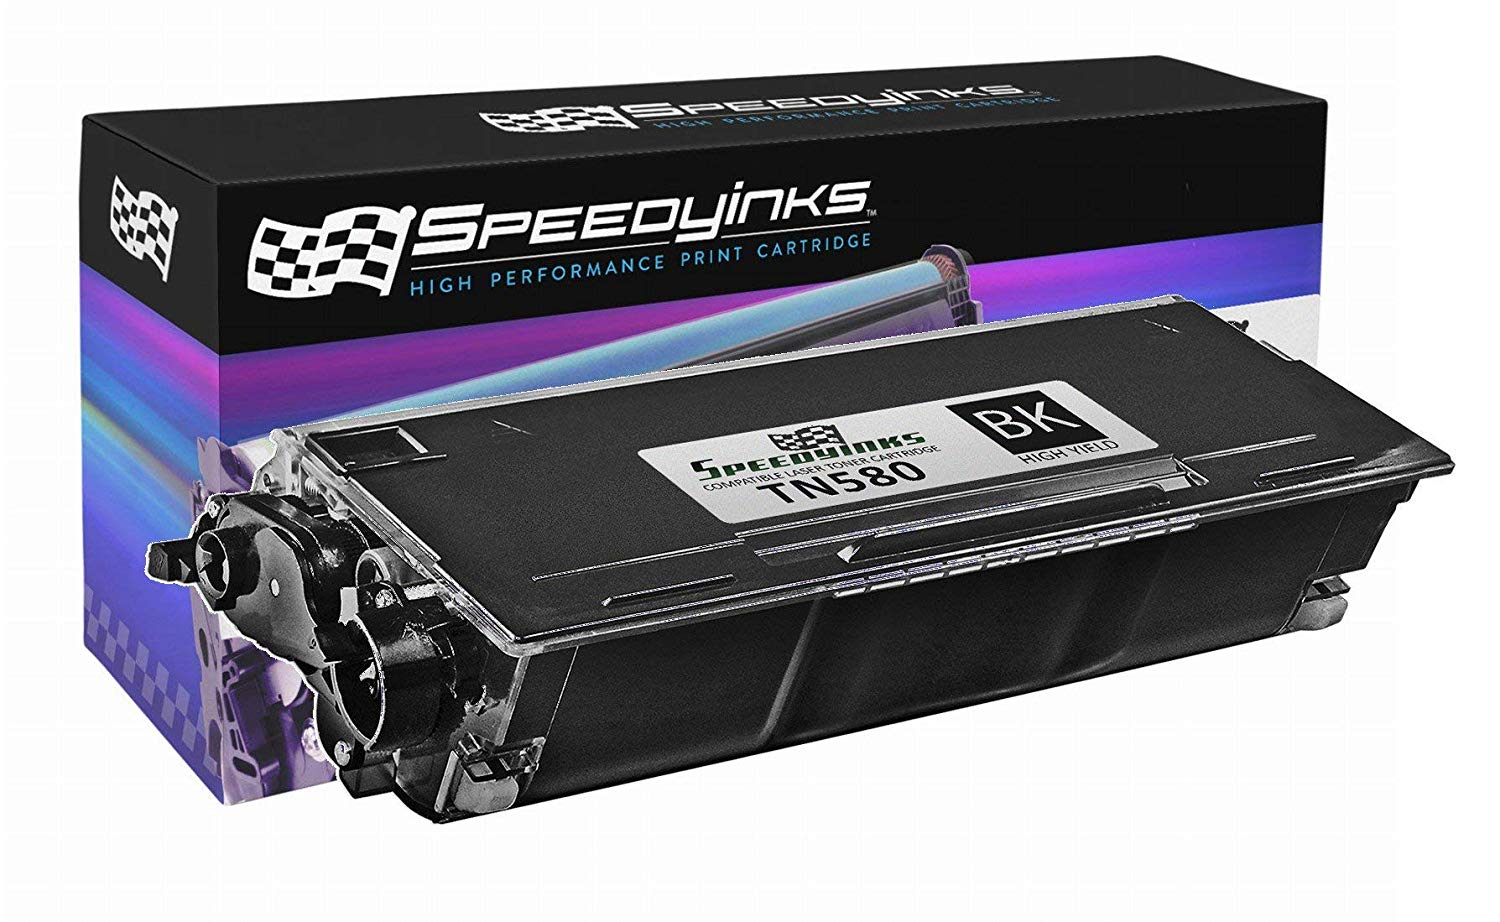 Speedy Inks - Compatible TN580 High Yield Black Laser Toner Cartridge for use in DCP-8060, DCP-8065, DCP-8065DN, HL-5200, HL-5240, HL-5240LT, HL-5250, HL-5250DN, HL-5250DNHY, HL-5250DNLT, HL-5250DNT, HL-5270DN, HL-5280, HL-5280DW, HL-5280DWLT, MFC-8460N, MFC-8470DN, MFC-8660DN, MFC-8670DN,